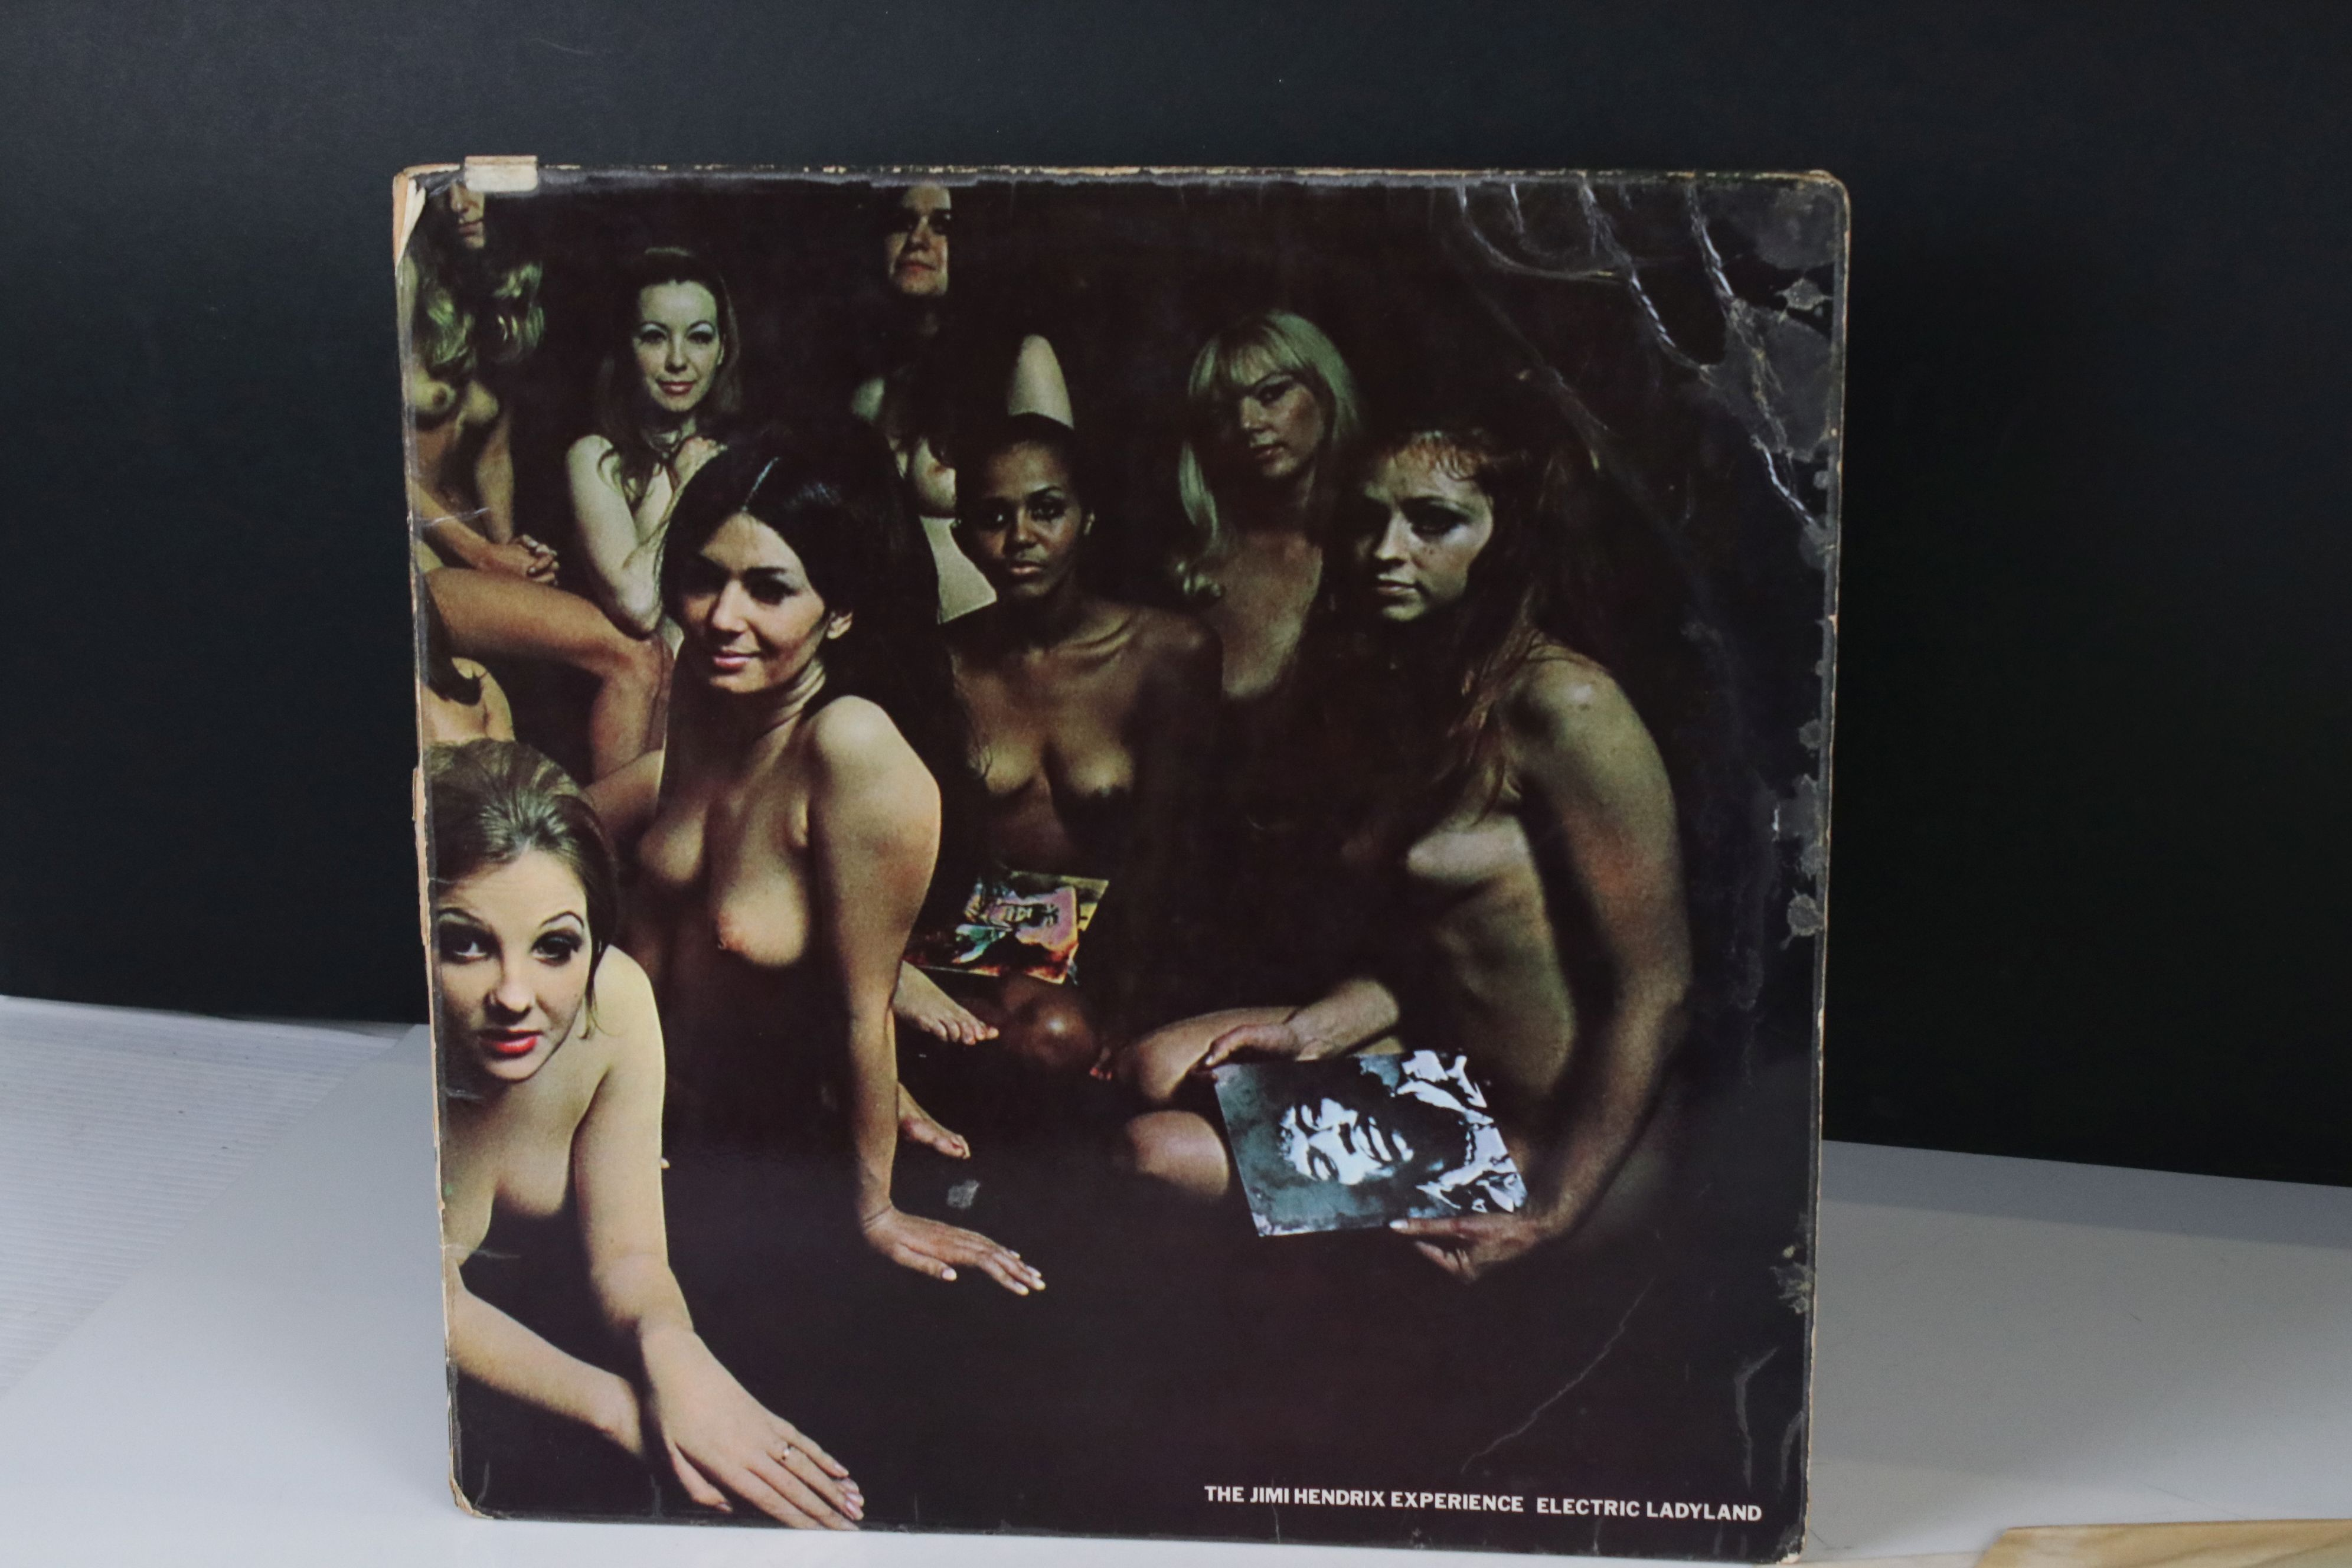 Vinyl - Jimi Hendrix Electric Ladyland LP on Track 613008/9 with inner with blue lettering with Jimi - Image 7 of 9